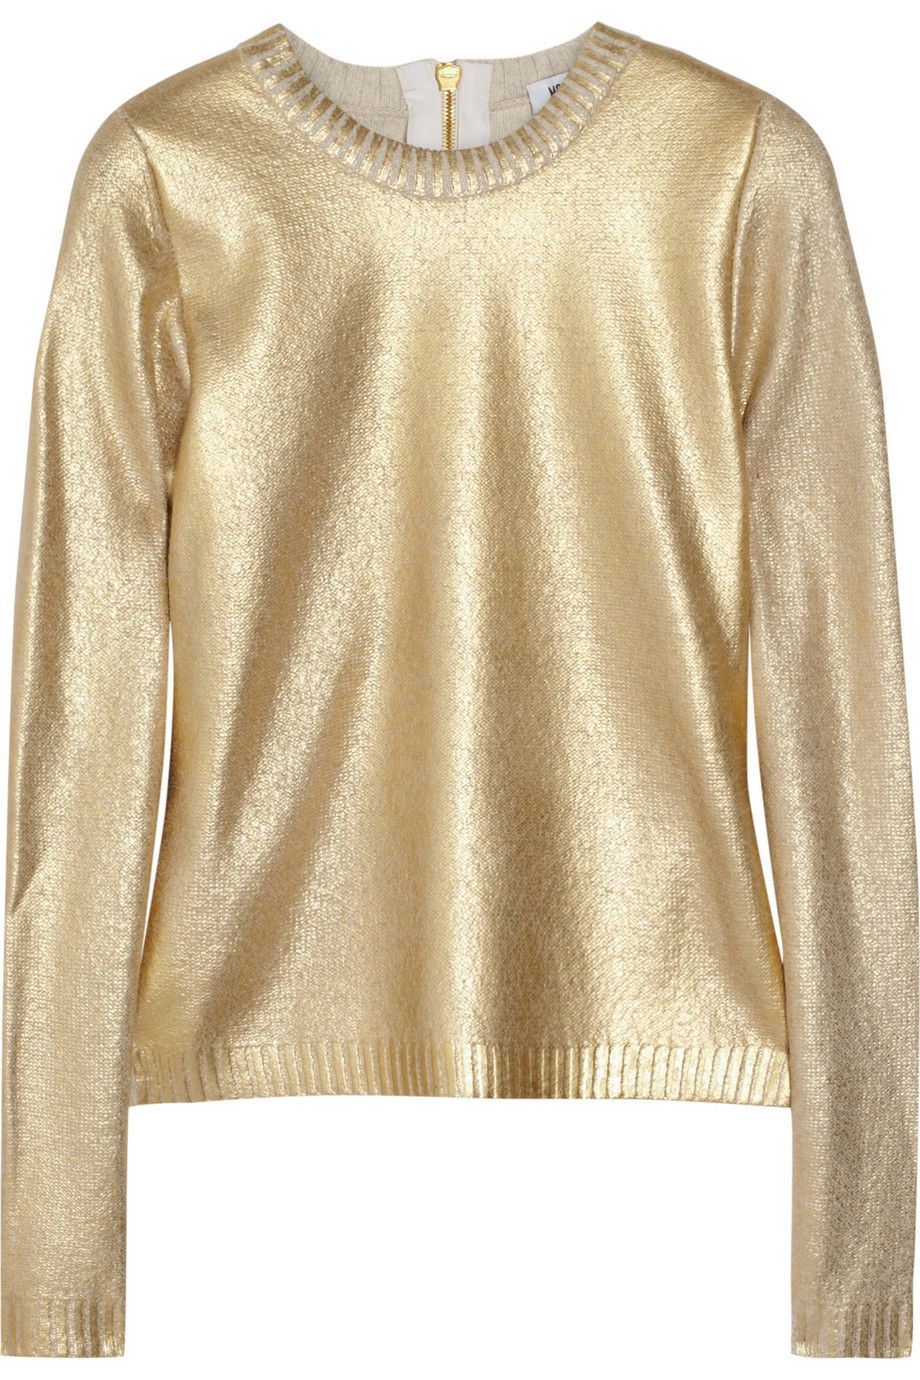 Metallic wool-blend sweater by Moschino | ❤ Fashion PieceS ...